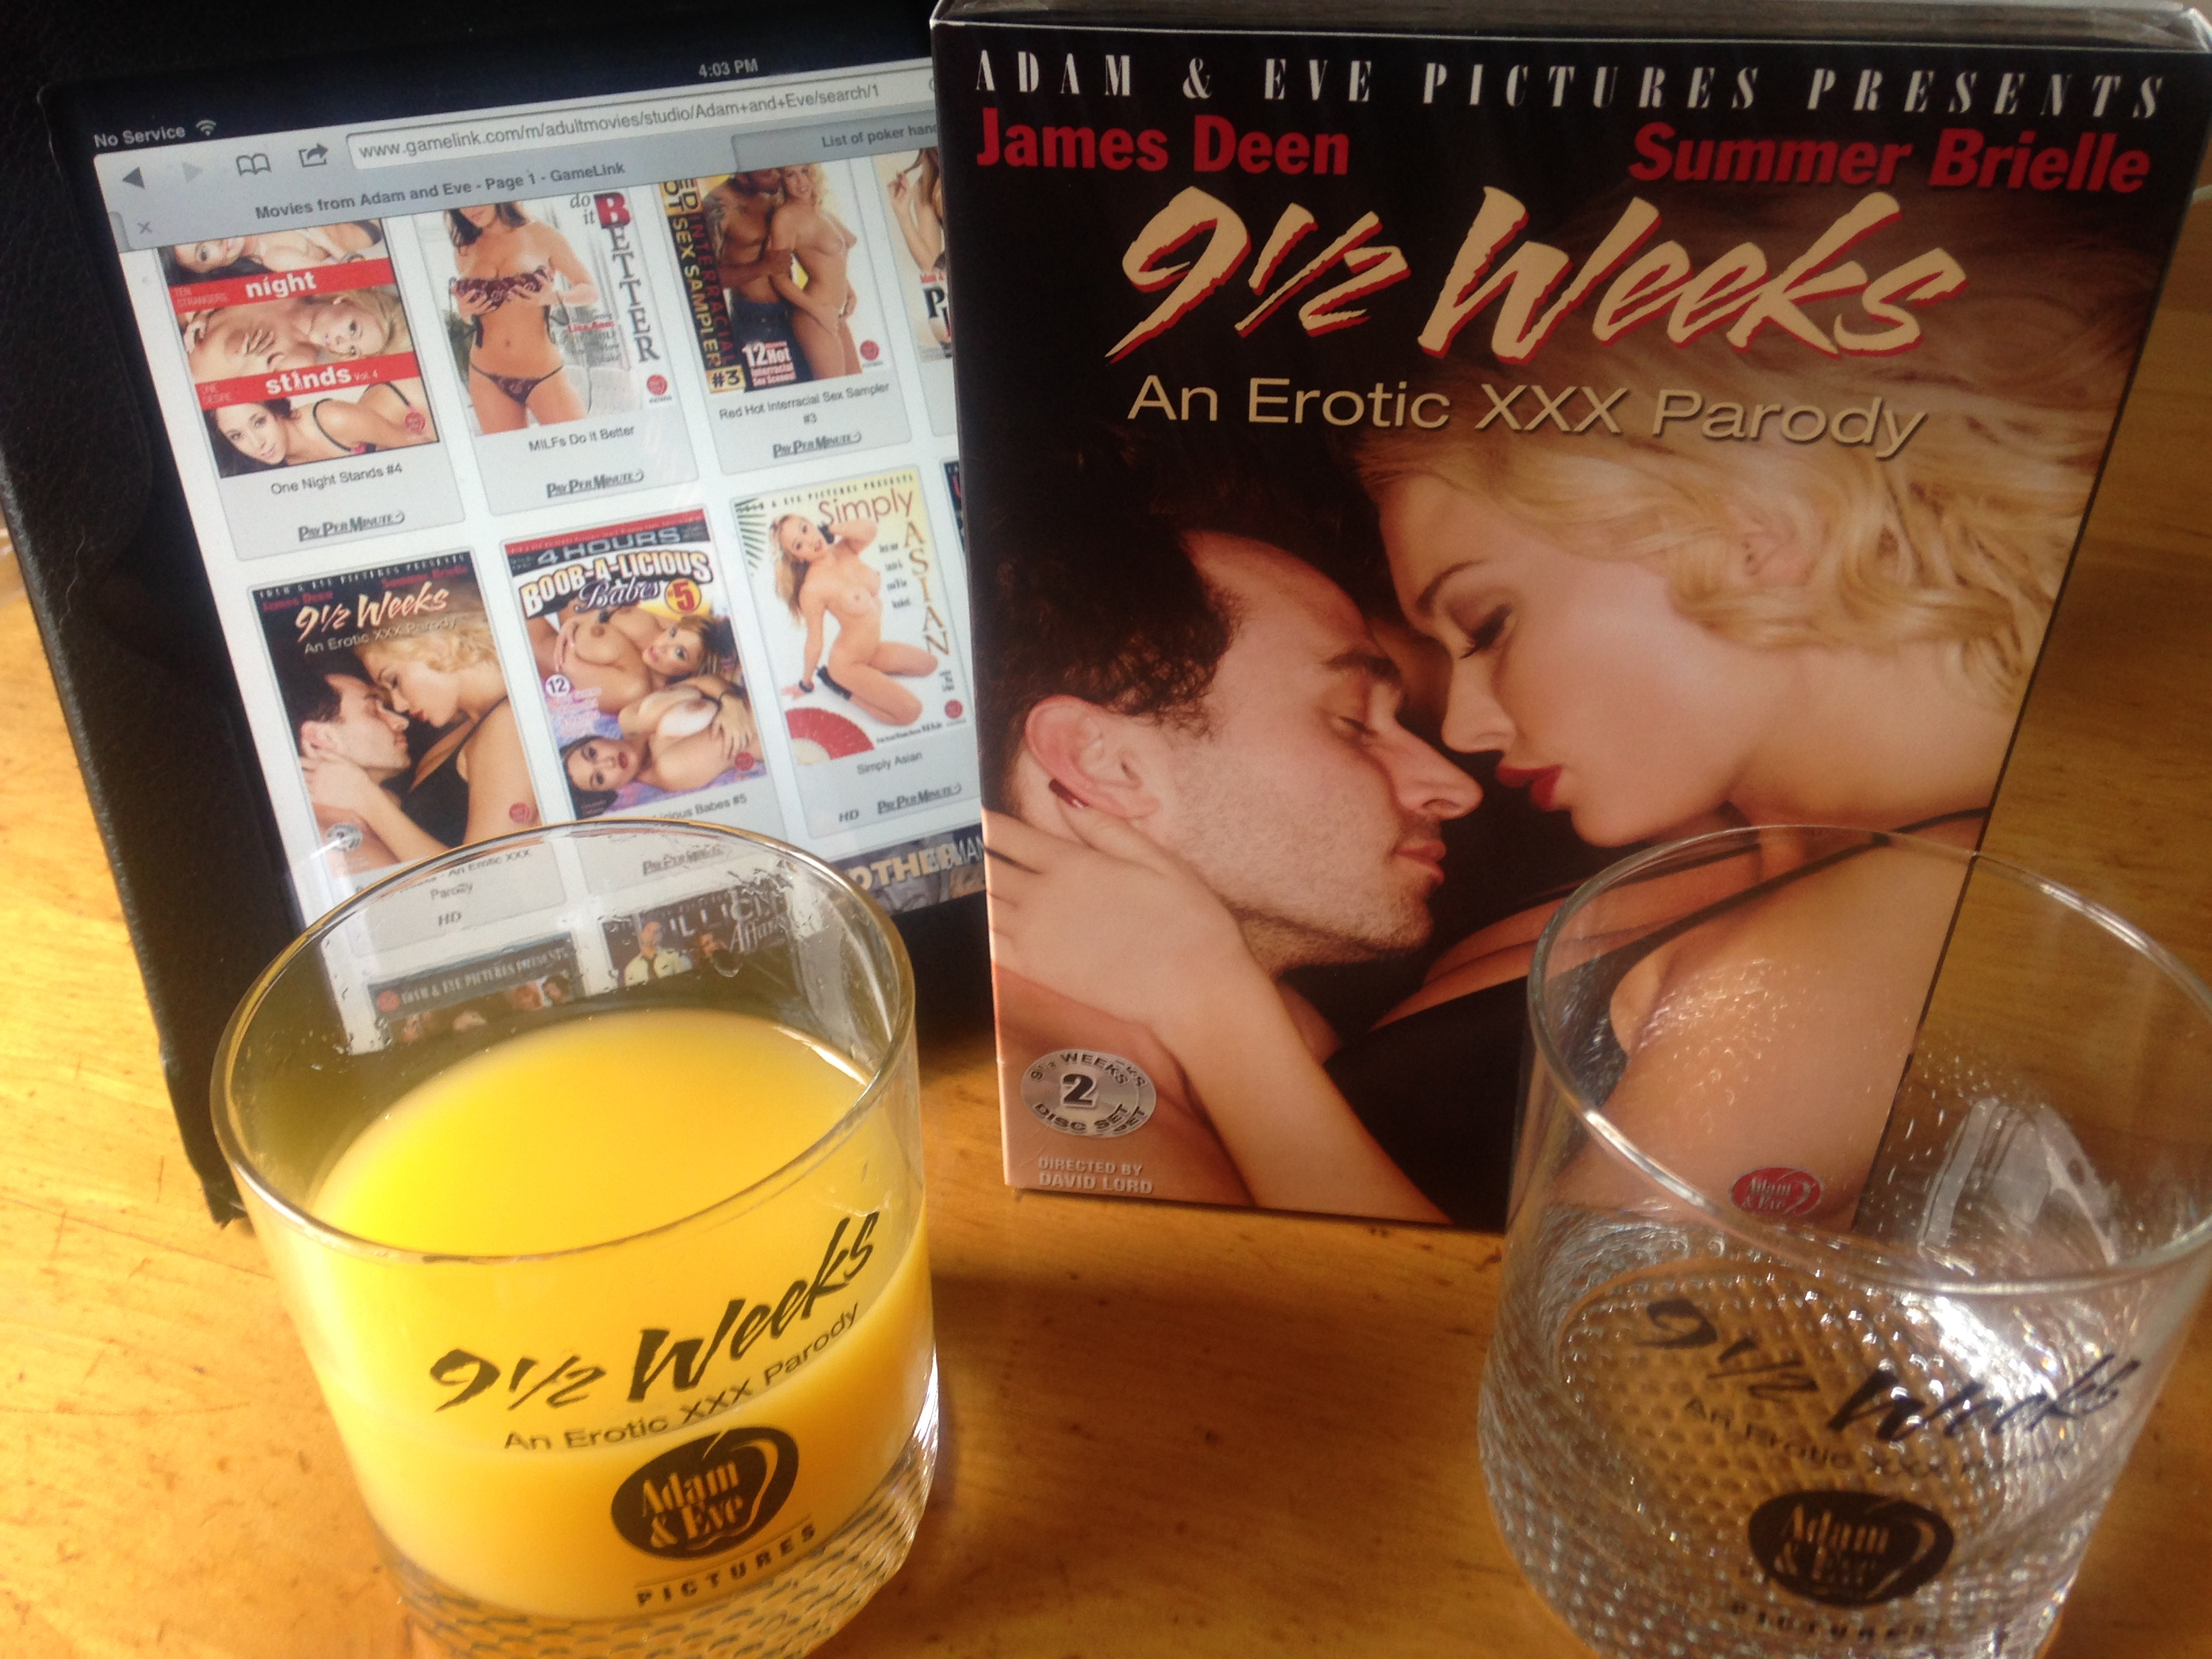 9 1/2 Weeks - An Erotic XXX Parody swag